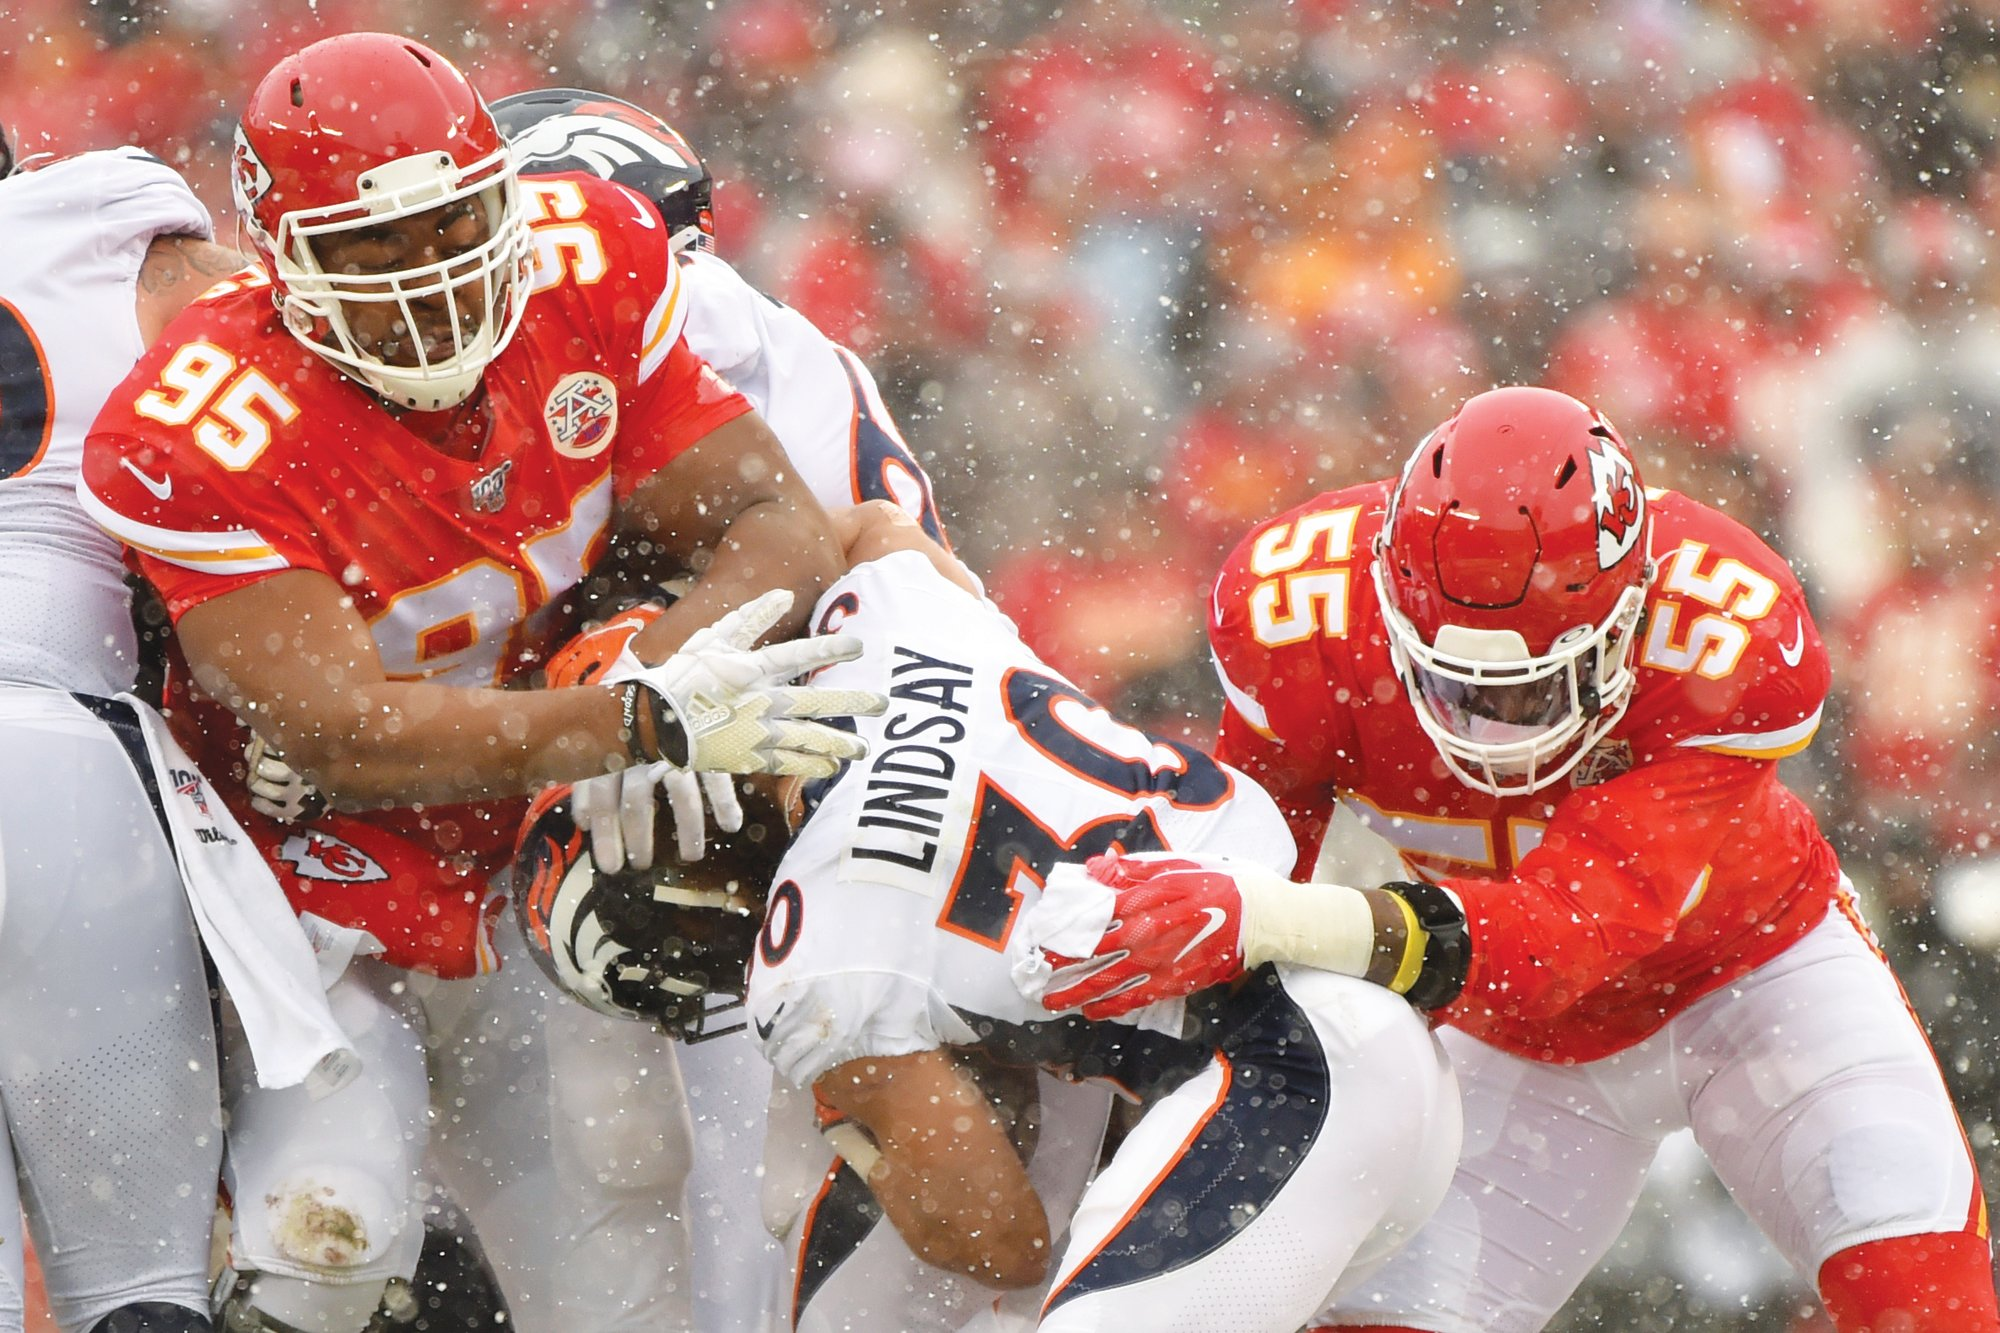 Kansas City defensive tackle Chris Jones (95) signed a 4-year extension with the Chiefs on Tuesday.